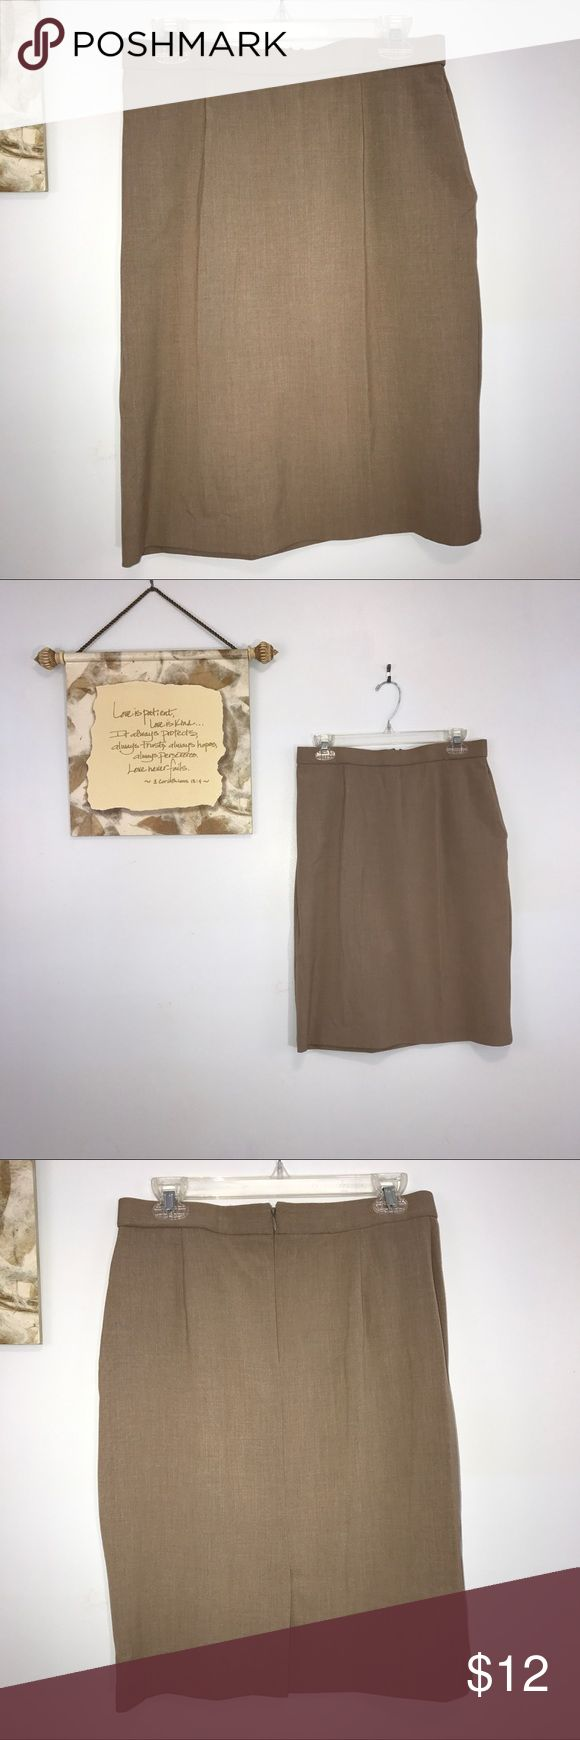 """Counterparts Tan Pencil Skirt Size 10 Counterparts tan pencil skirt. Has Black front panel for tummy control. 6"""" rear split. Lying flat, approximate measurements are: waist 15""""; hip 21""""; length 23"""". (F02-015) Skirts Pencil"""